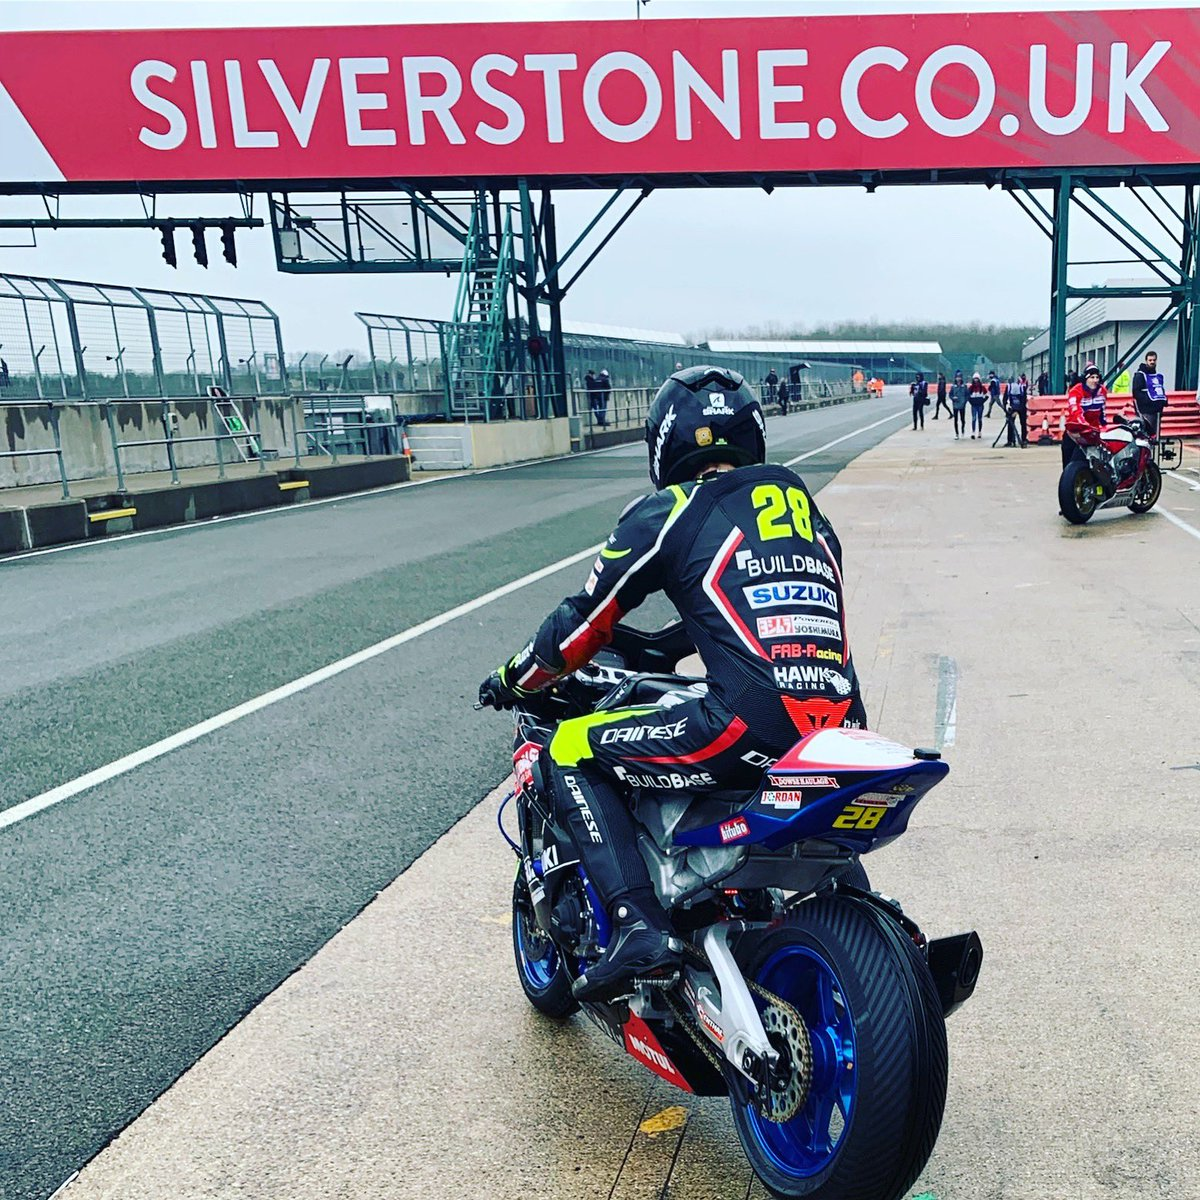 There's only one place we're heading to today... SILVERSTONE    #silverstonebsb #bsbready #hawkracing #buildbasesuzuki #silverstone #bikeracing #bsb #bsb2019 #britishsuperbikes<br>http://pic.twitter.com/fRlWVxP2uy